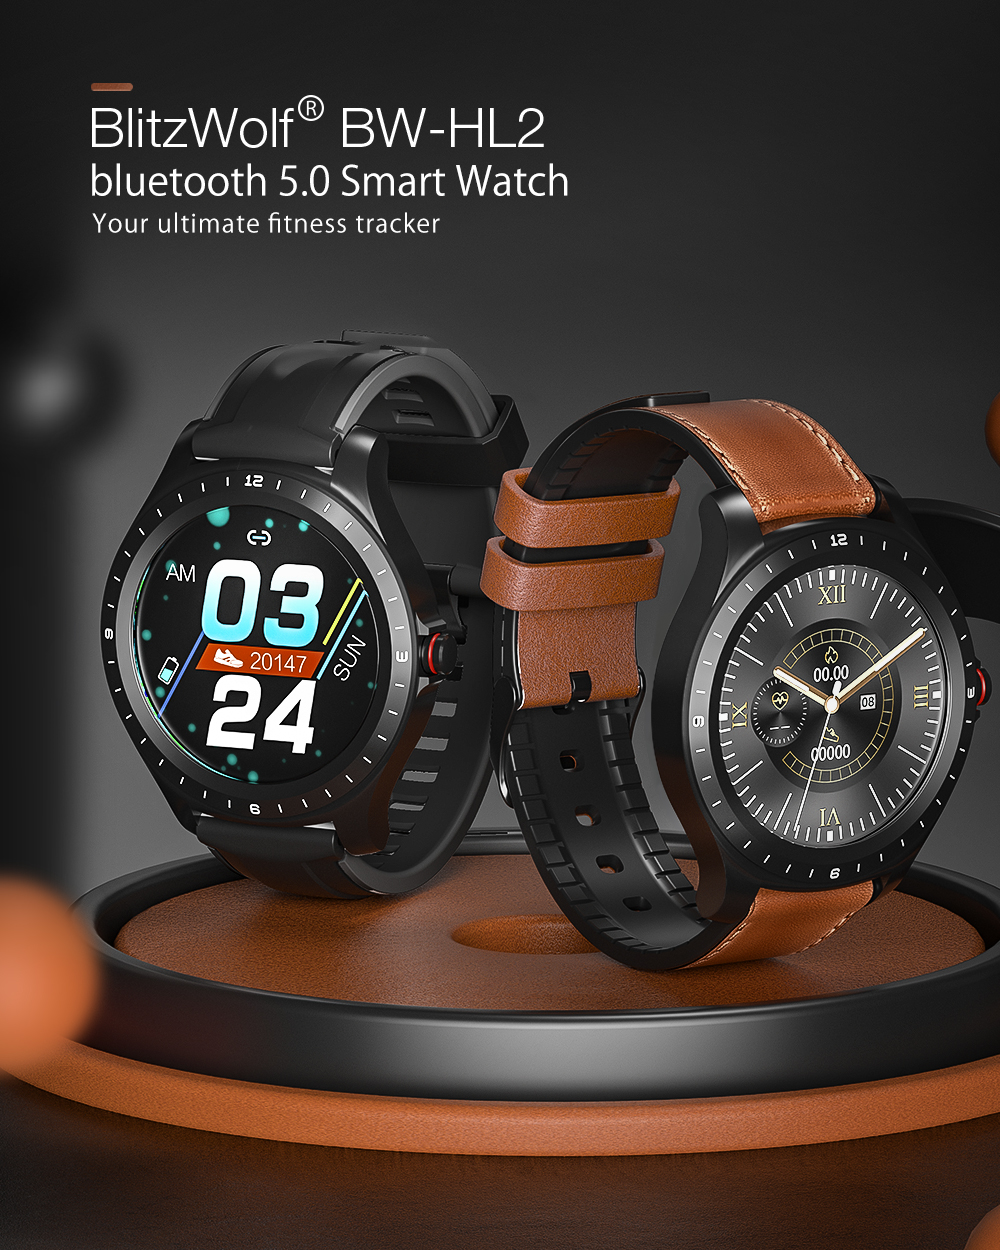 [ bluetooth 5.0 ] blitzwolf bw-hl2 smart watch 1.3' full round touch screen heart rate blood pressure o2 monitor ip68 smartwatch